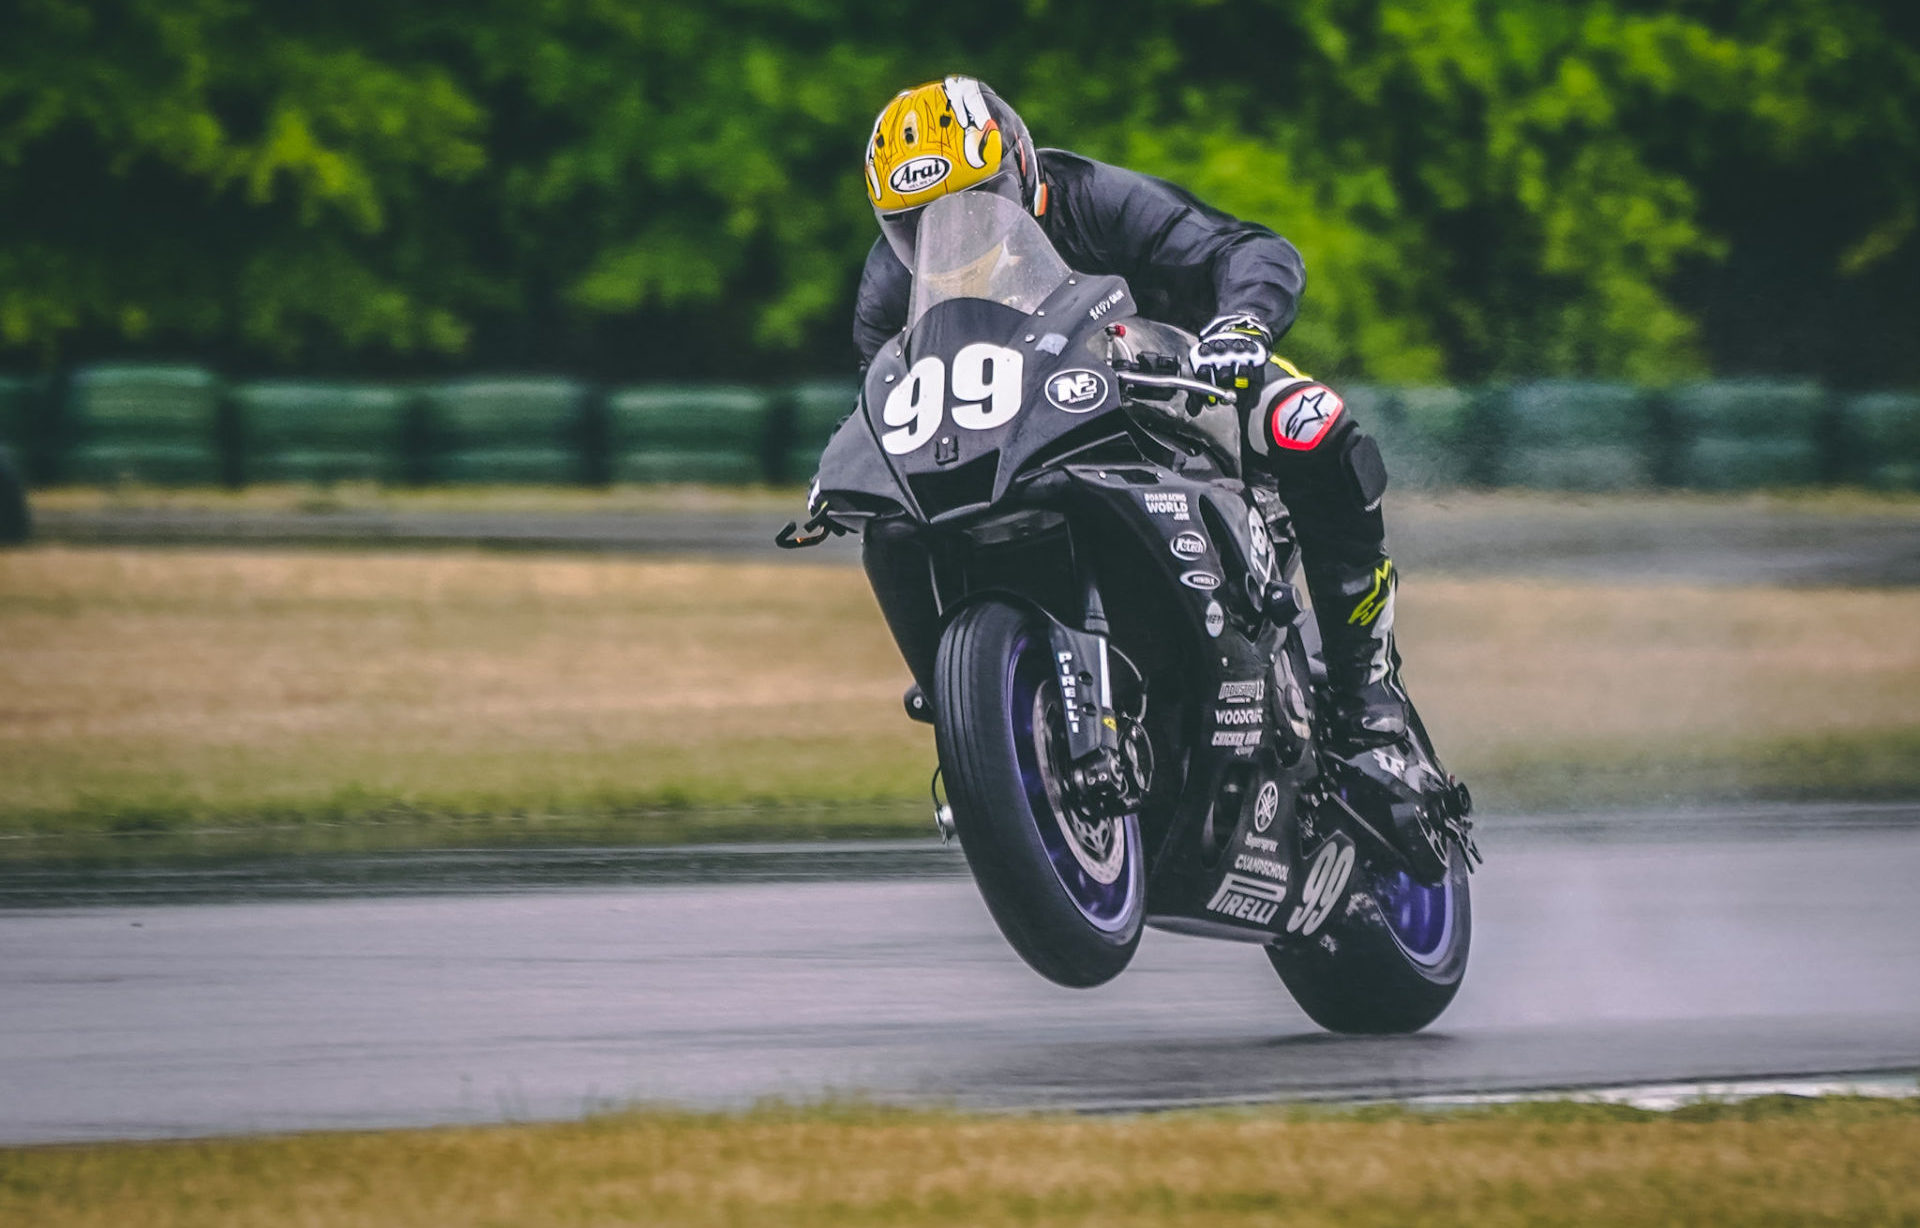 Ben Walters, Jr. (99) at speed on the Army of Darkness Yamaha YZF-R1 at Carolina Motorsports Park. Photo by Christopher Holder, courtesy AOD.